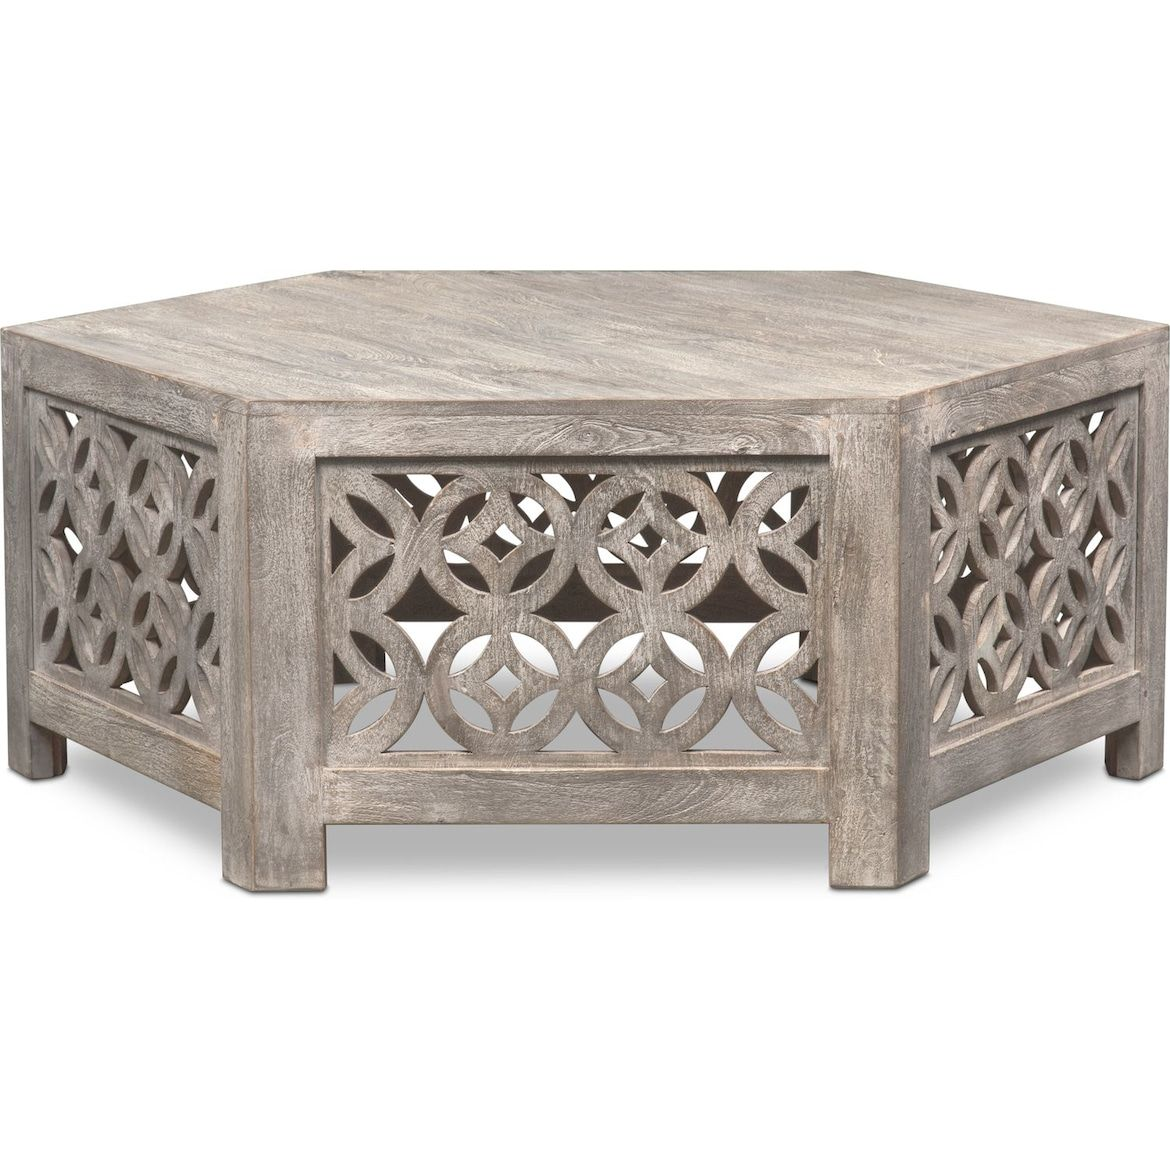 Parlor Coffee Table Painting Wooden Furniture Furniture Coffee